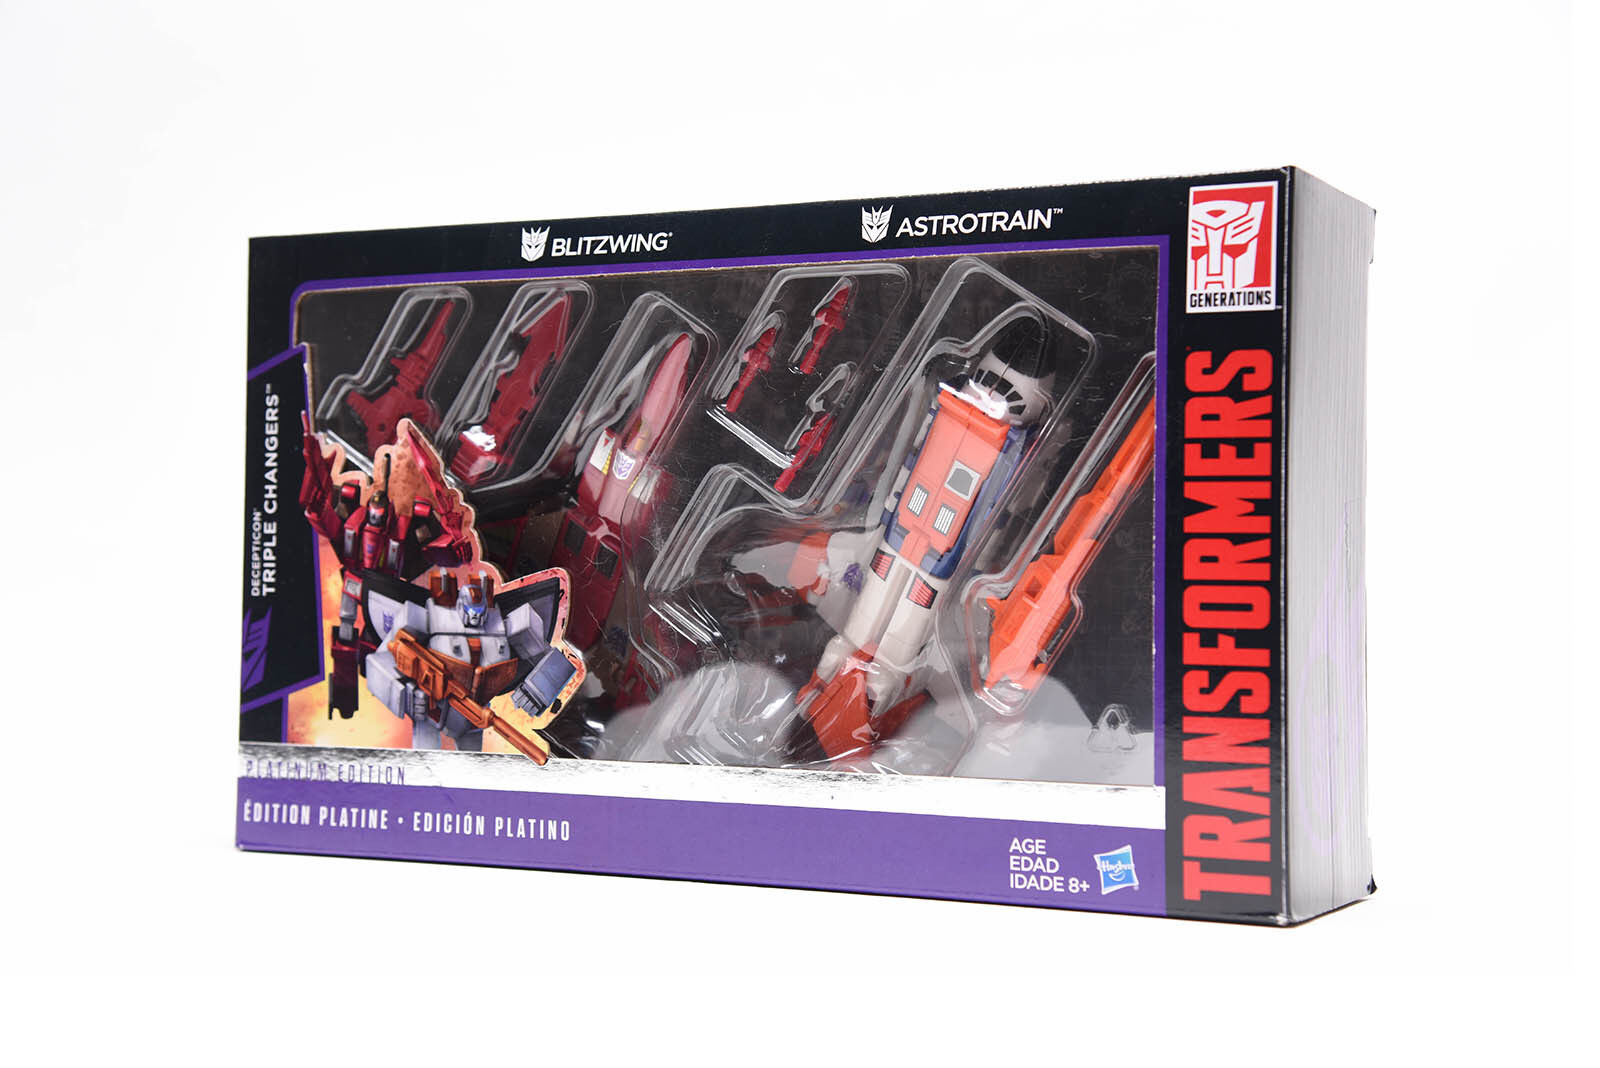 Transformers Hasbro G1 Reissue Platinum Edition Astredrain Blitzwing NEW